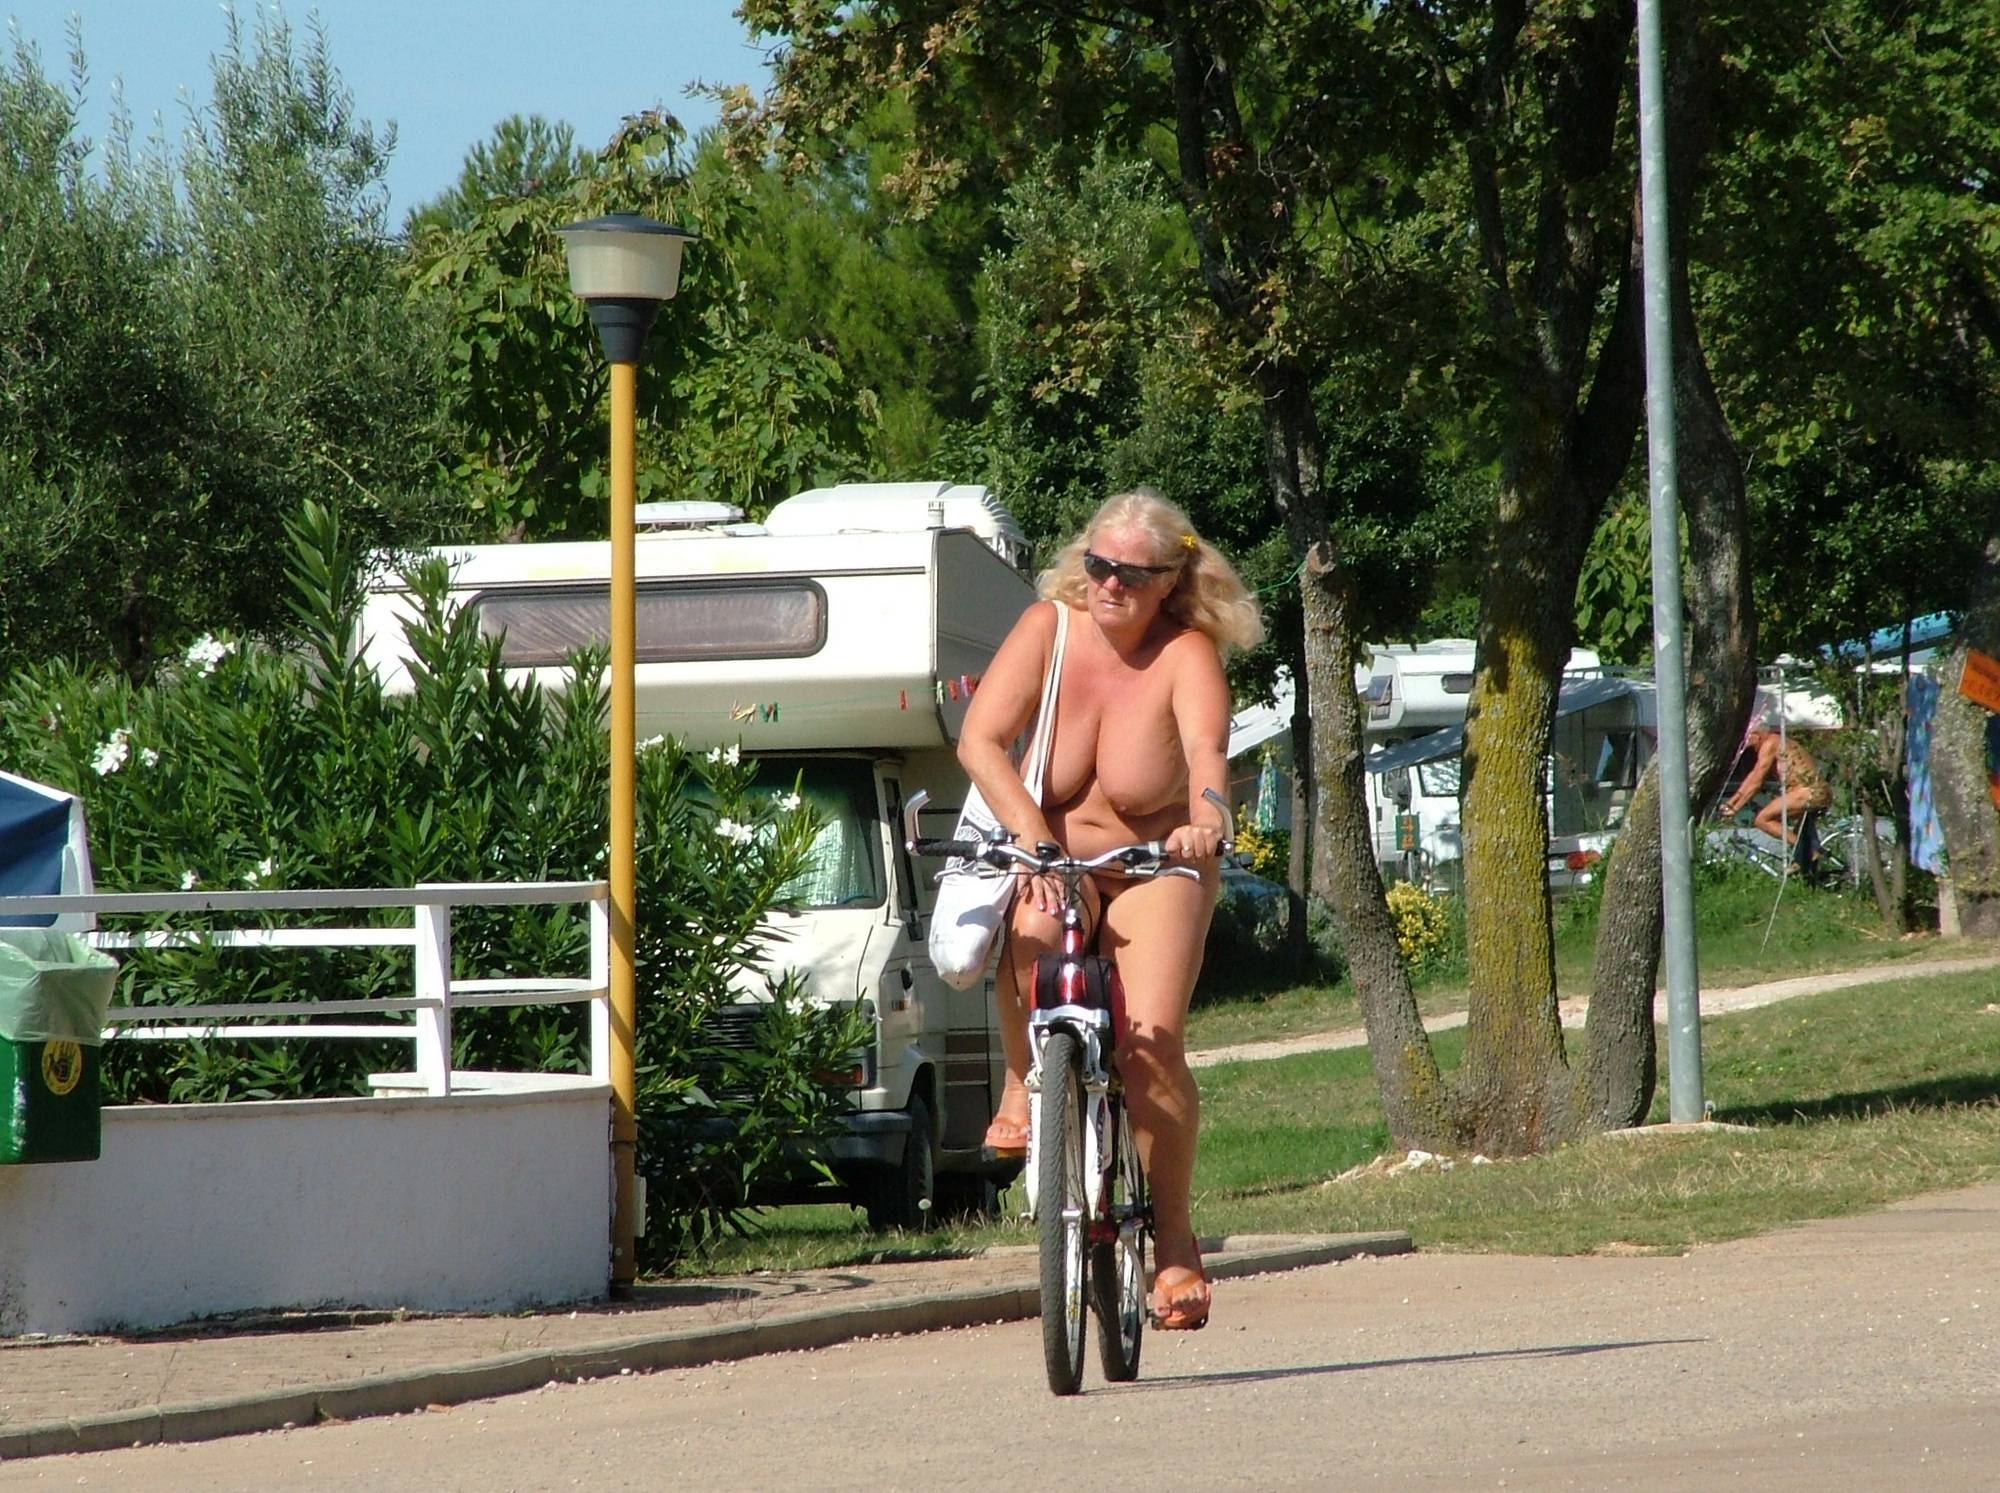 Nudist Pictures Naturist FKK Day Biking - 2